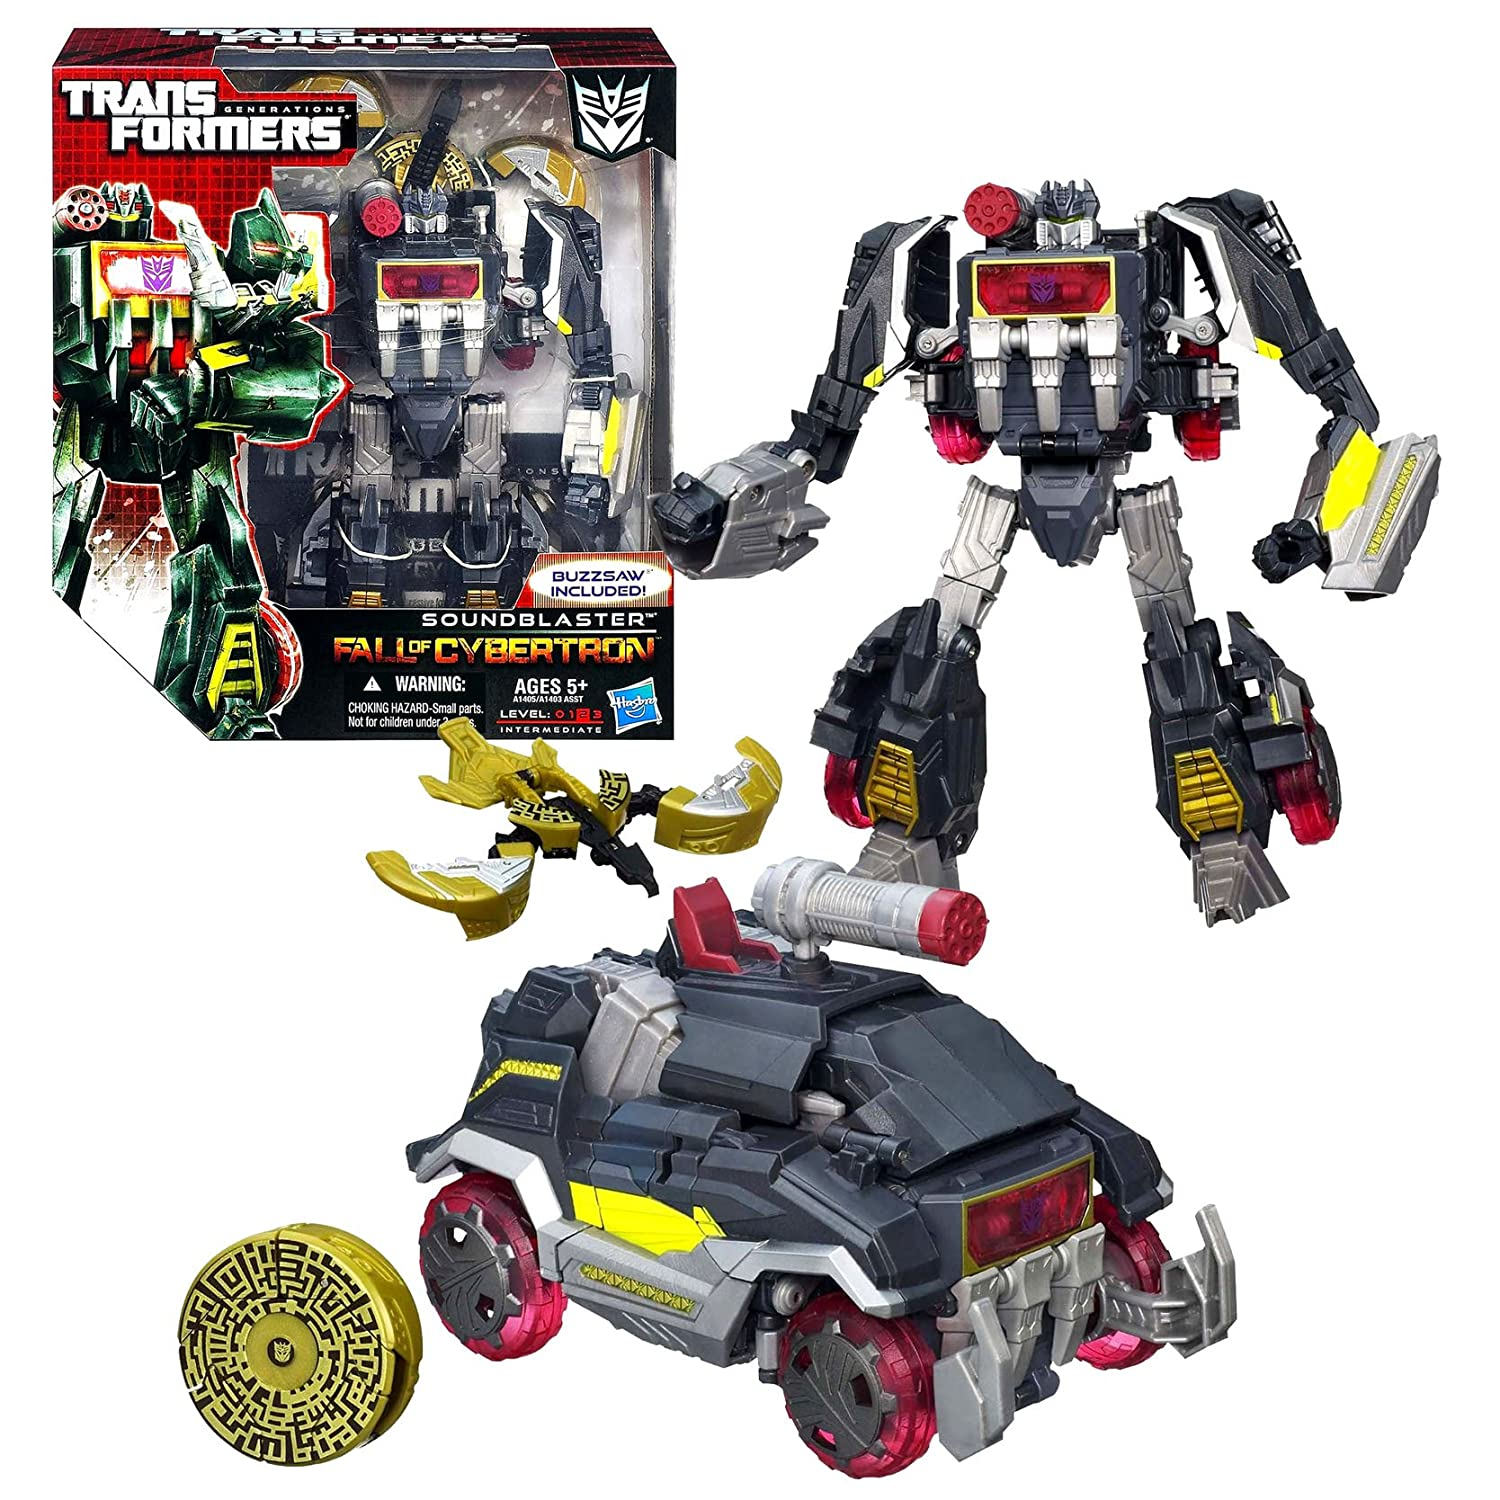 Hasbro Year 2012 Transformers Generations Fall of Cybertron Series 01 Voyager Class 7-1/2 Inch Tall Robot Action Figure B00C0KPWD8